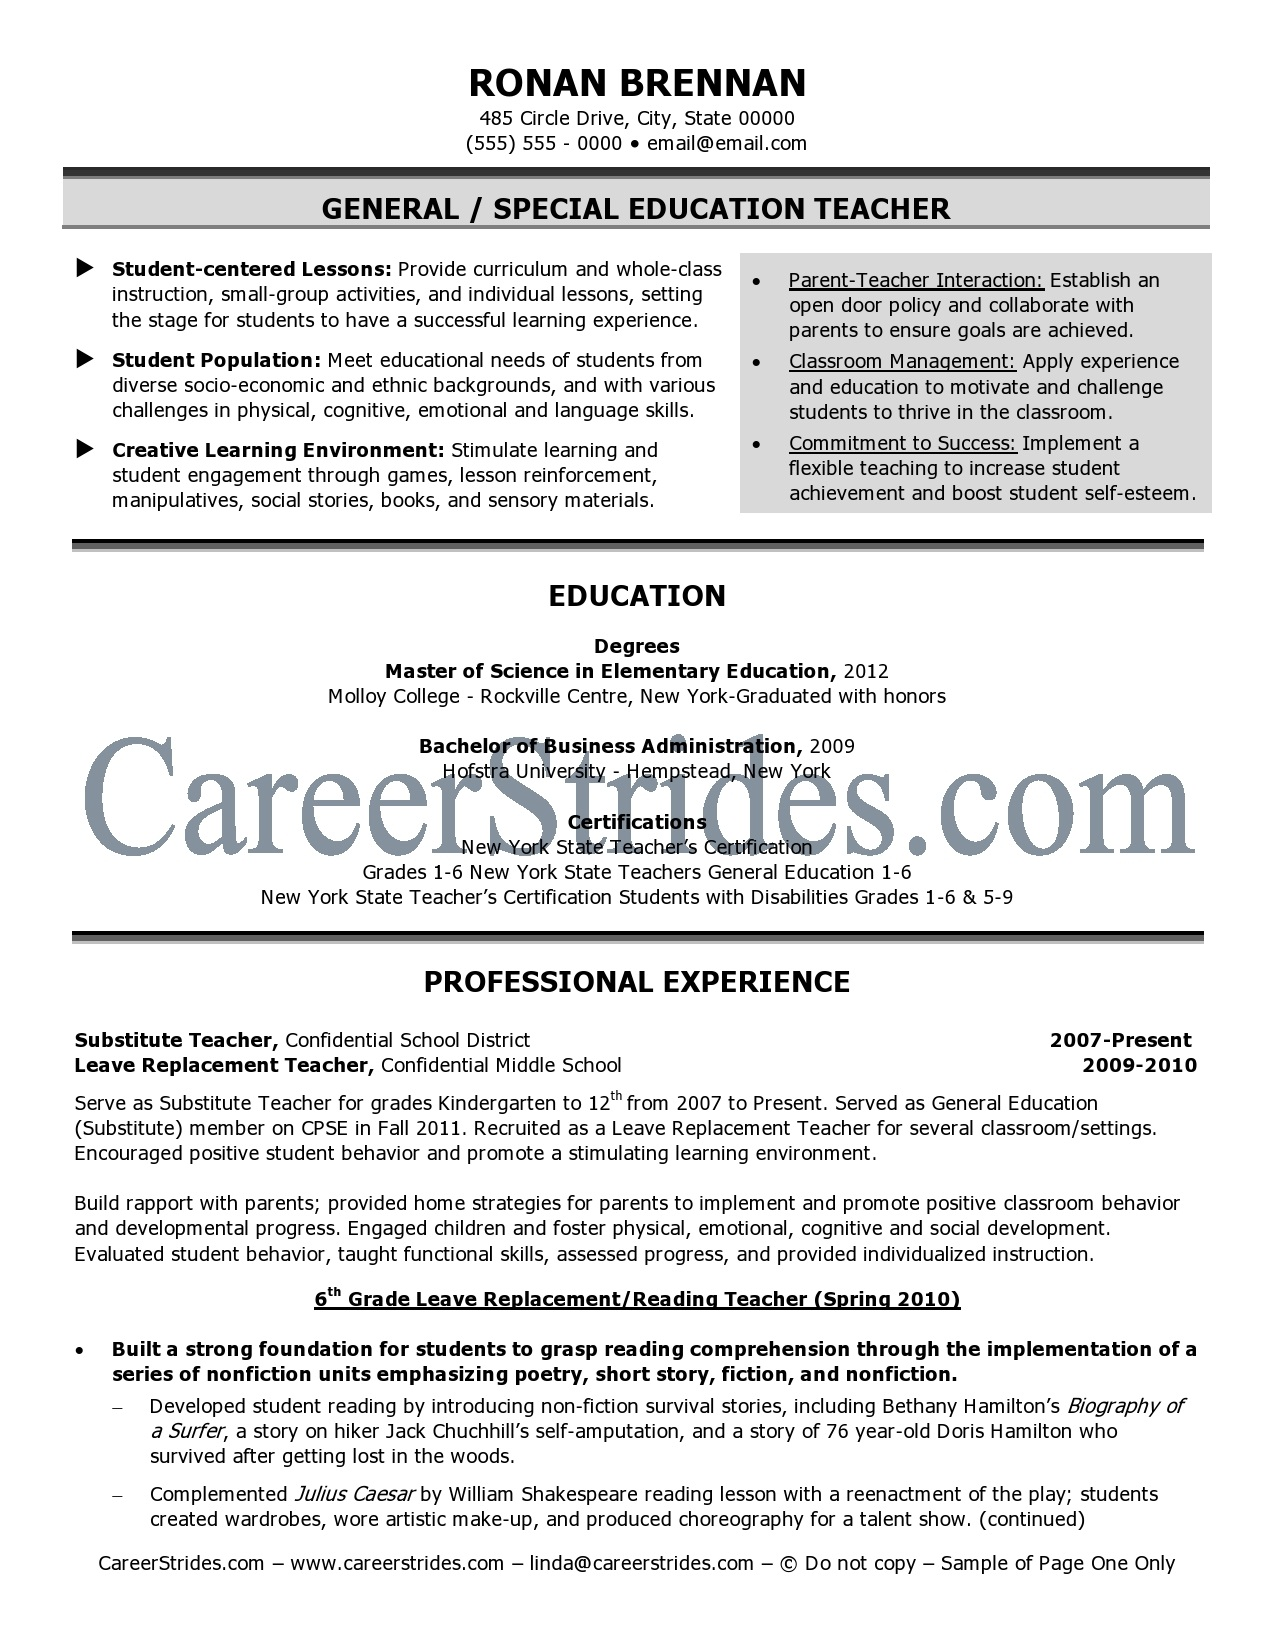 educator resumes